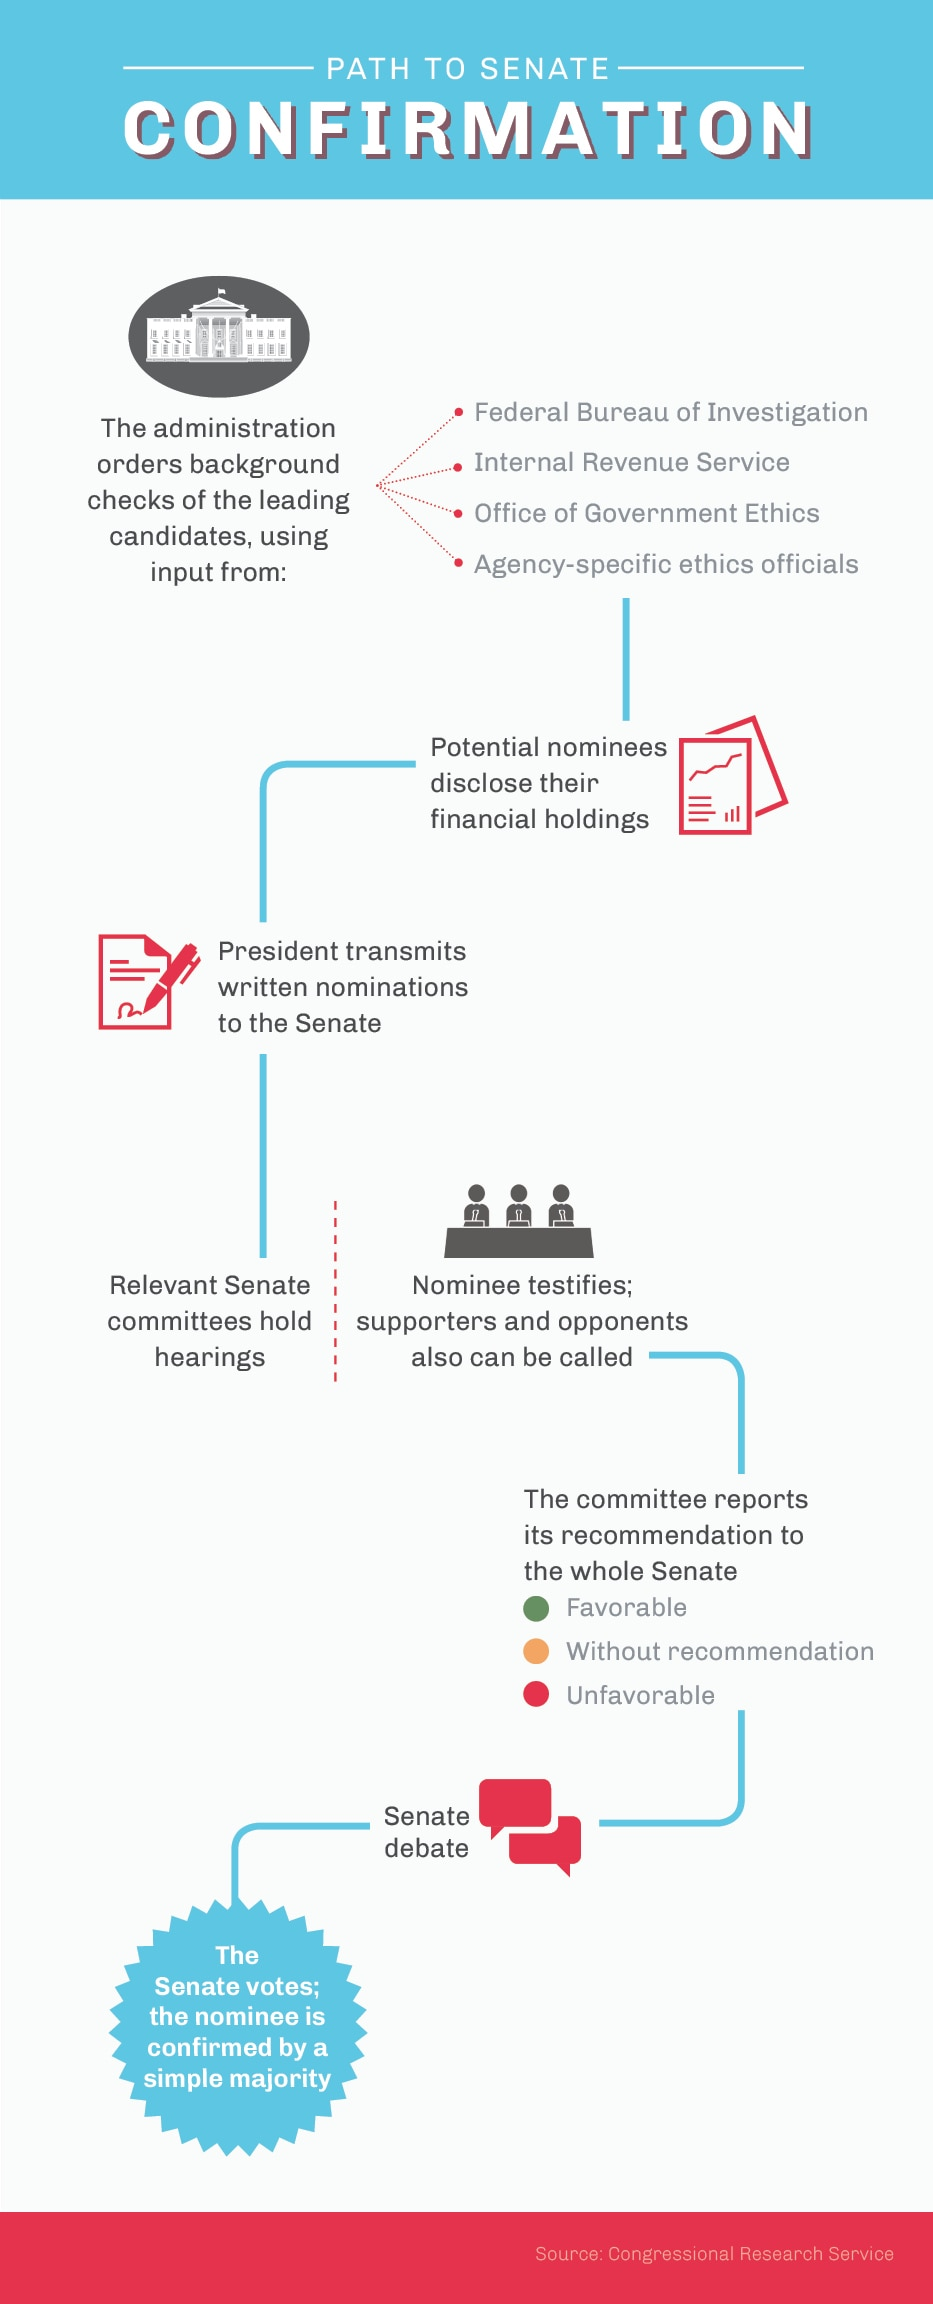 Infographic of steps for Senate confirmation: background checks, financial disclosures, nomination letters, committee hearings, Senate debate and vote (State Dept./Julia Maruszewski)